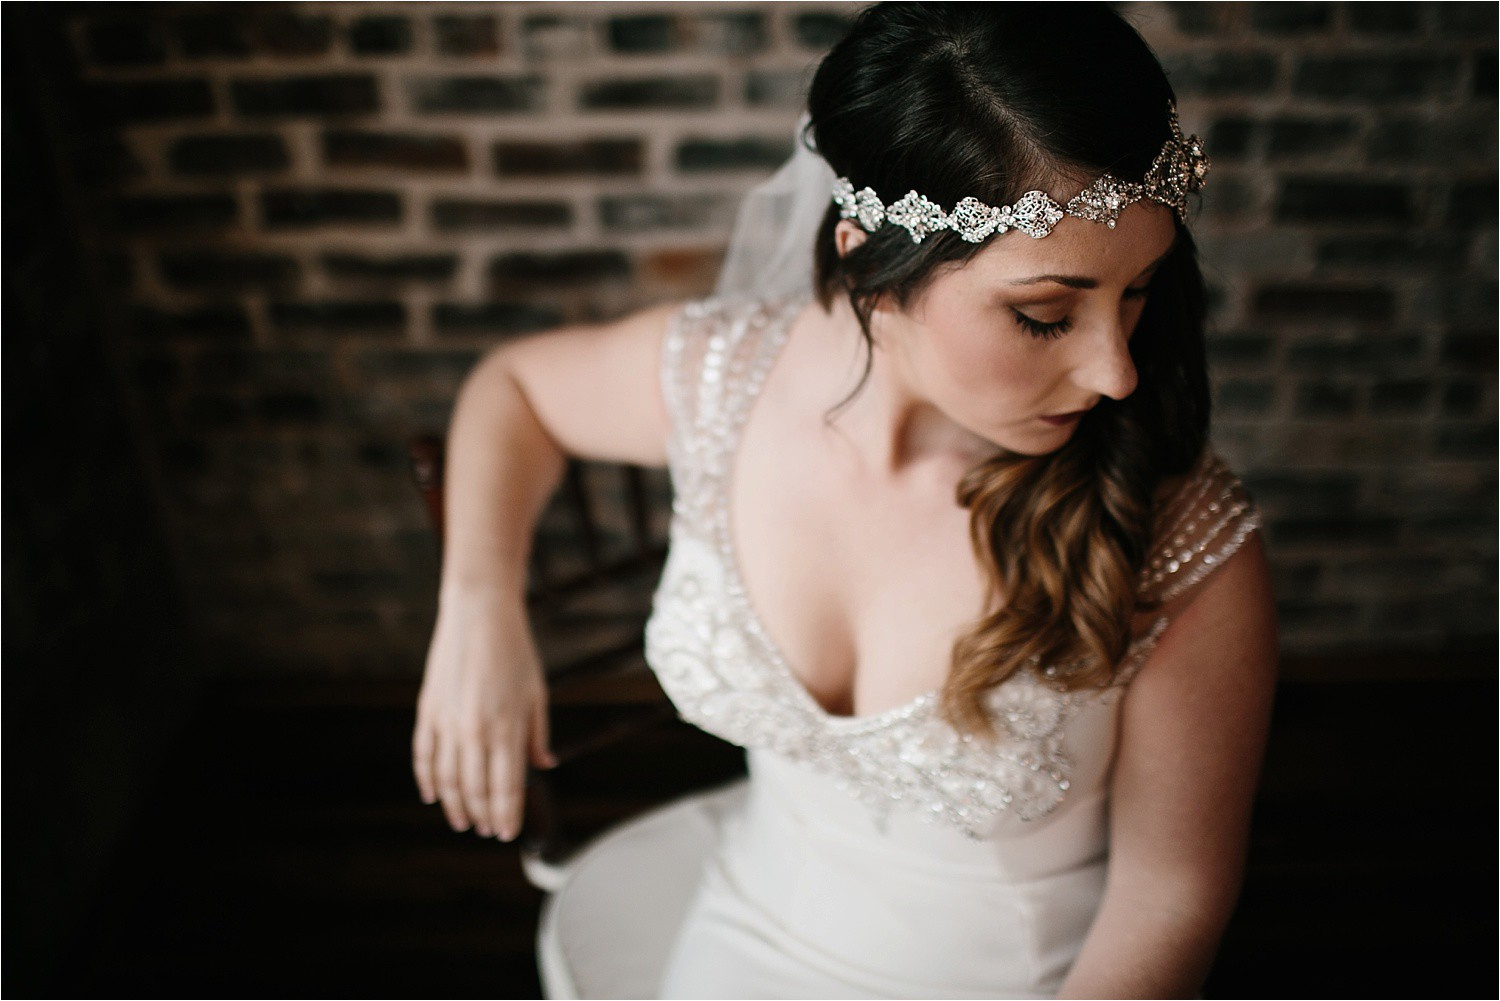 whittney-drew-__-an-intimate-wine-and-navy-wedding-in-an-industrial-venue-at-loft-123-in-paris-tx-by-north-texas-wedding-photographer-rachel-meagan-photography-_-026